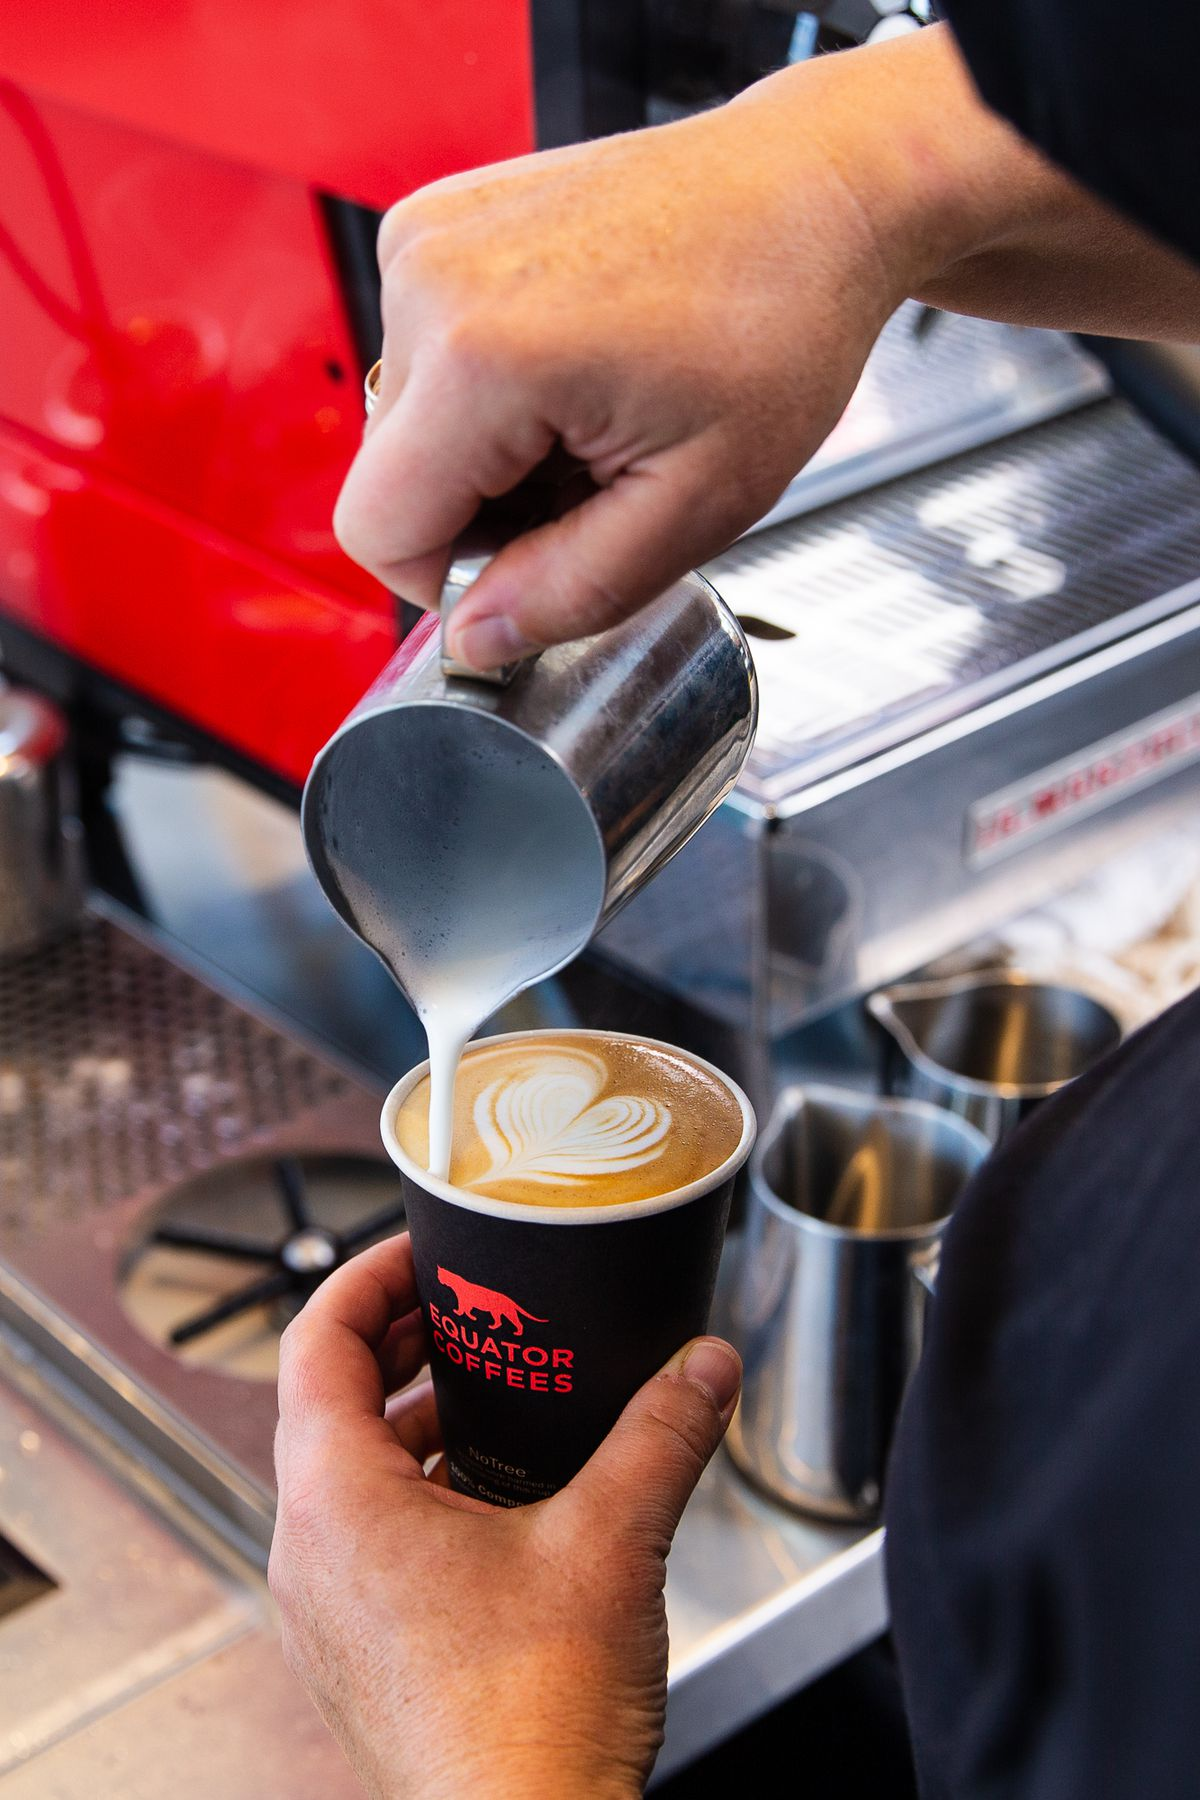 A latte being poured at Equator Coffees at Round House Cafe